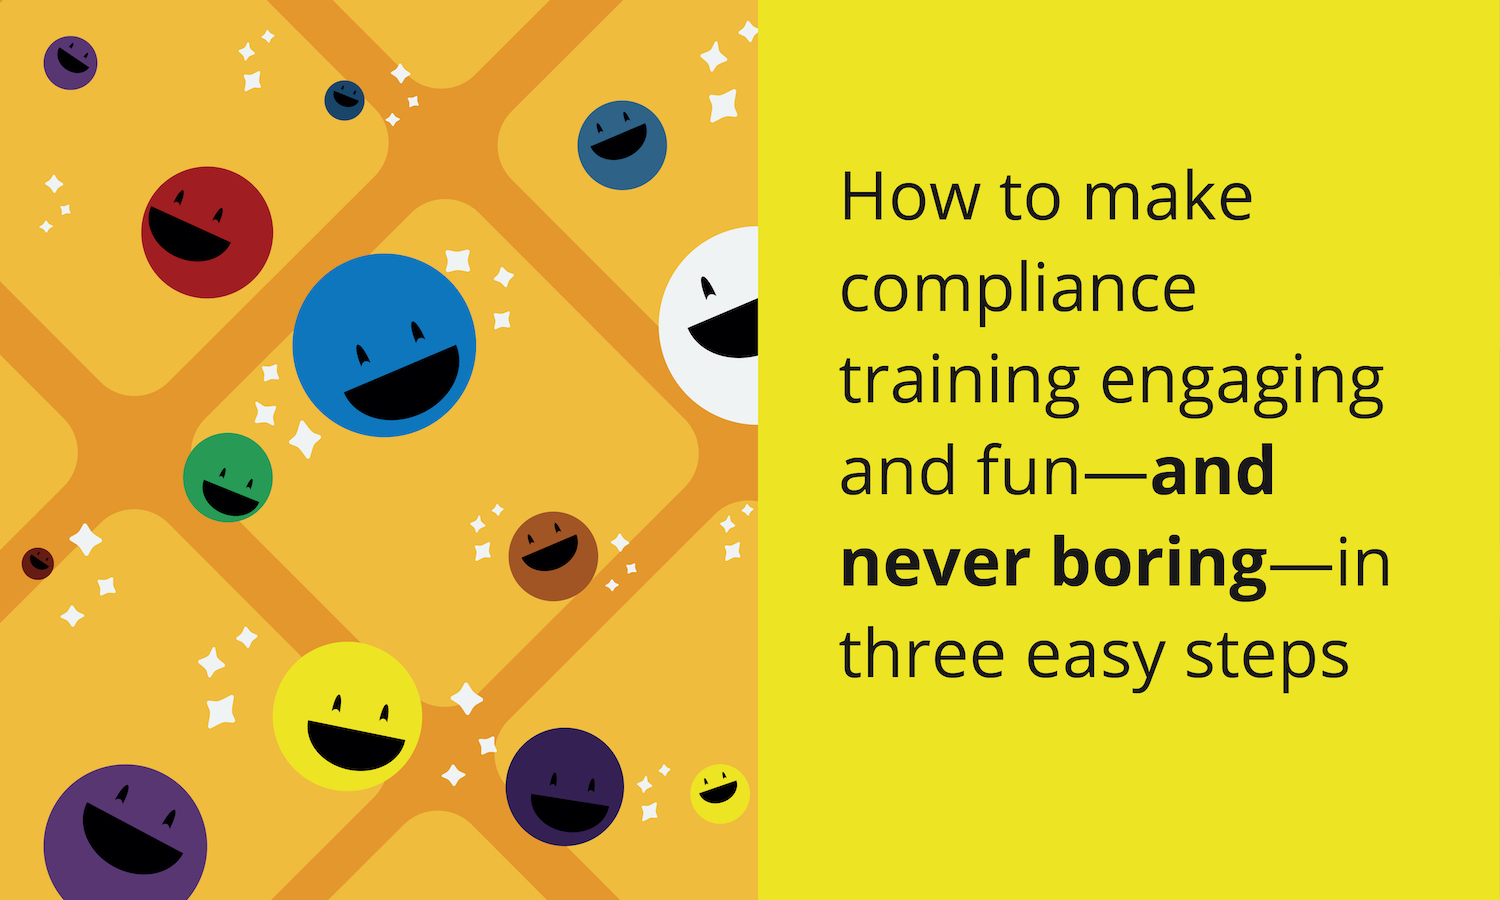 How to make compliance training engaging and fun—and never boring—in three easy steps.